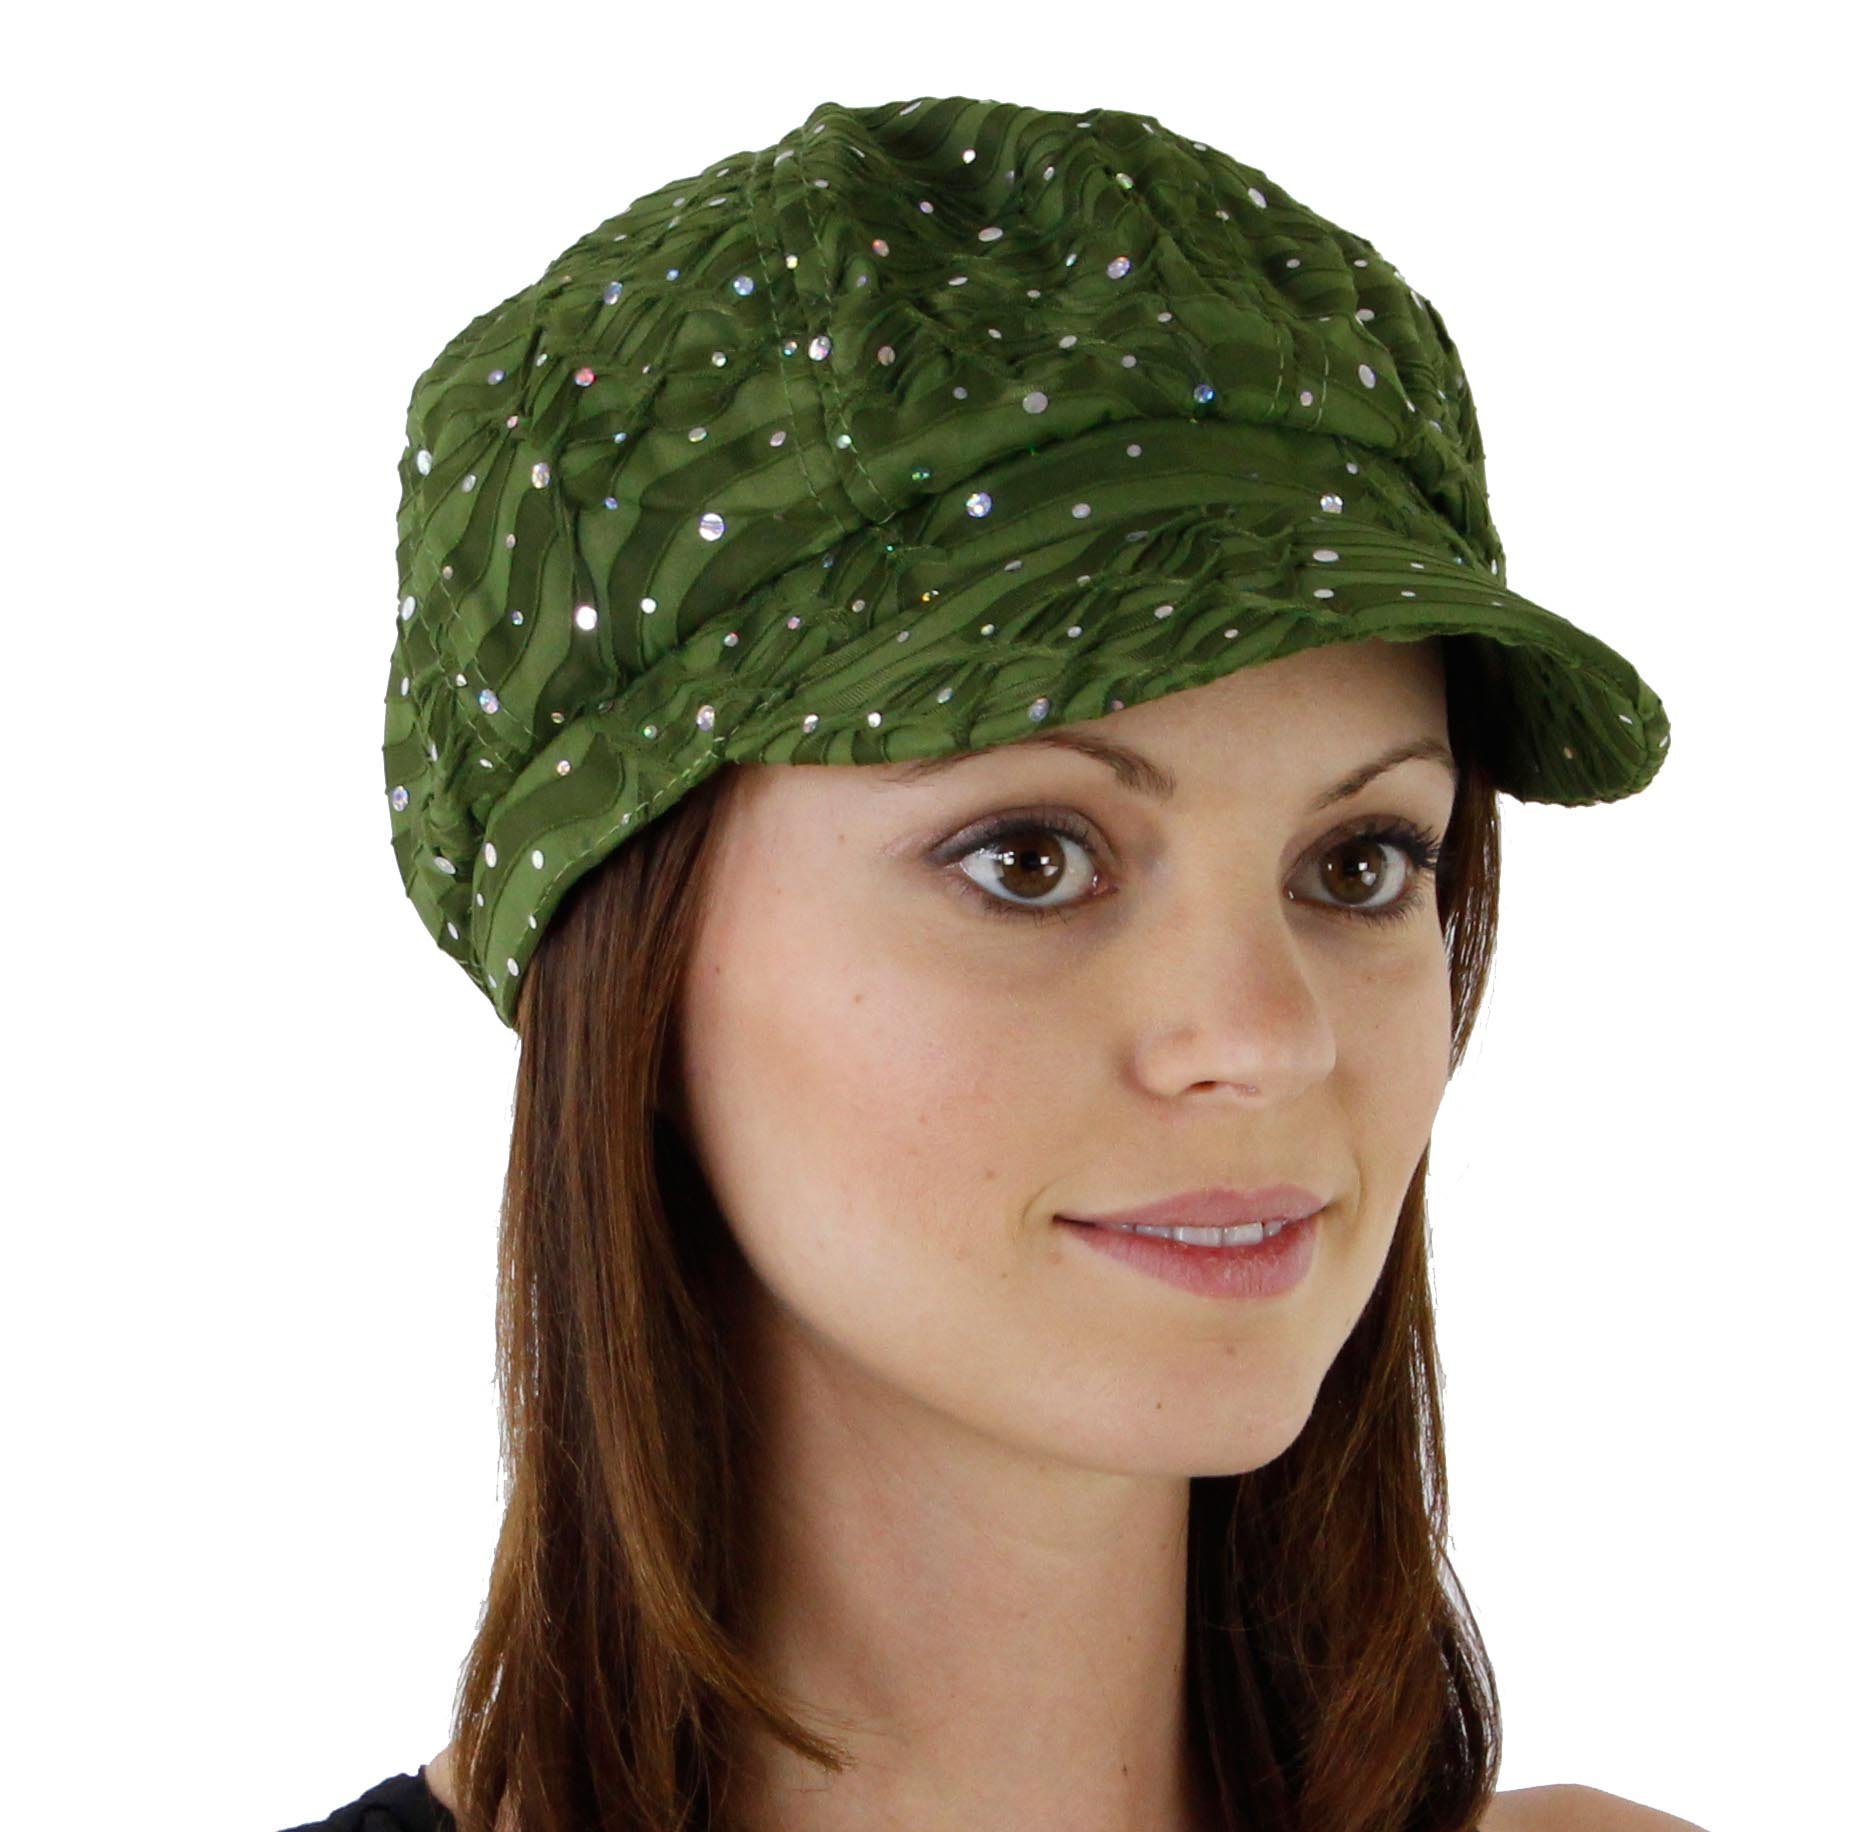 Glitter Sequin Trim Newsboy Style Relaxed Fit Cap, Olive Green by Greatlookz Fashion (Image #1)